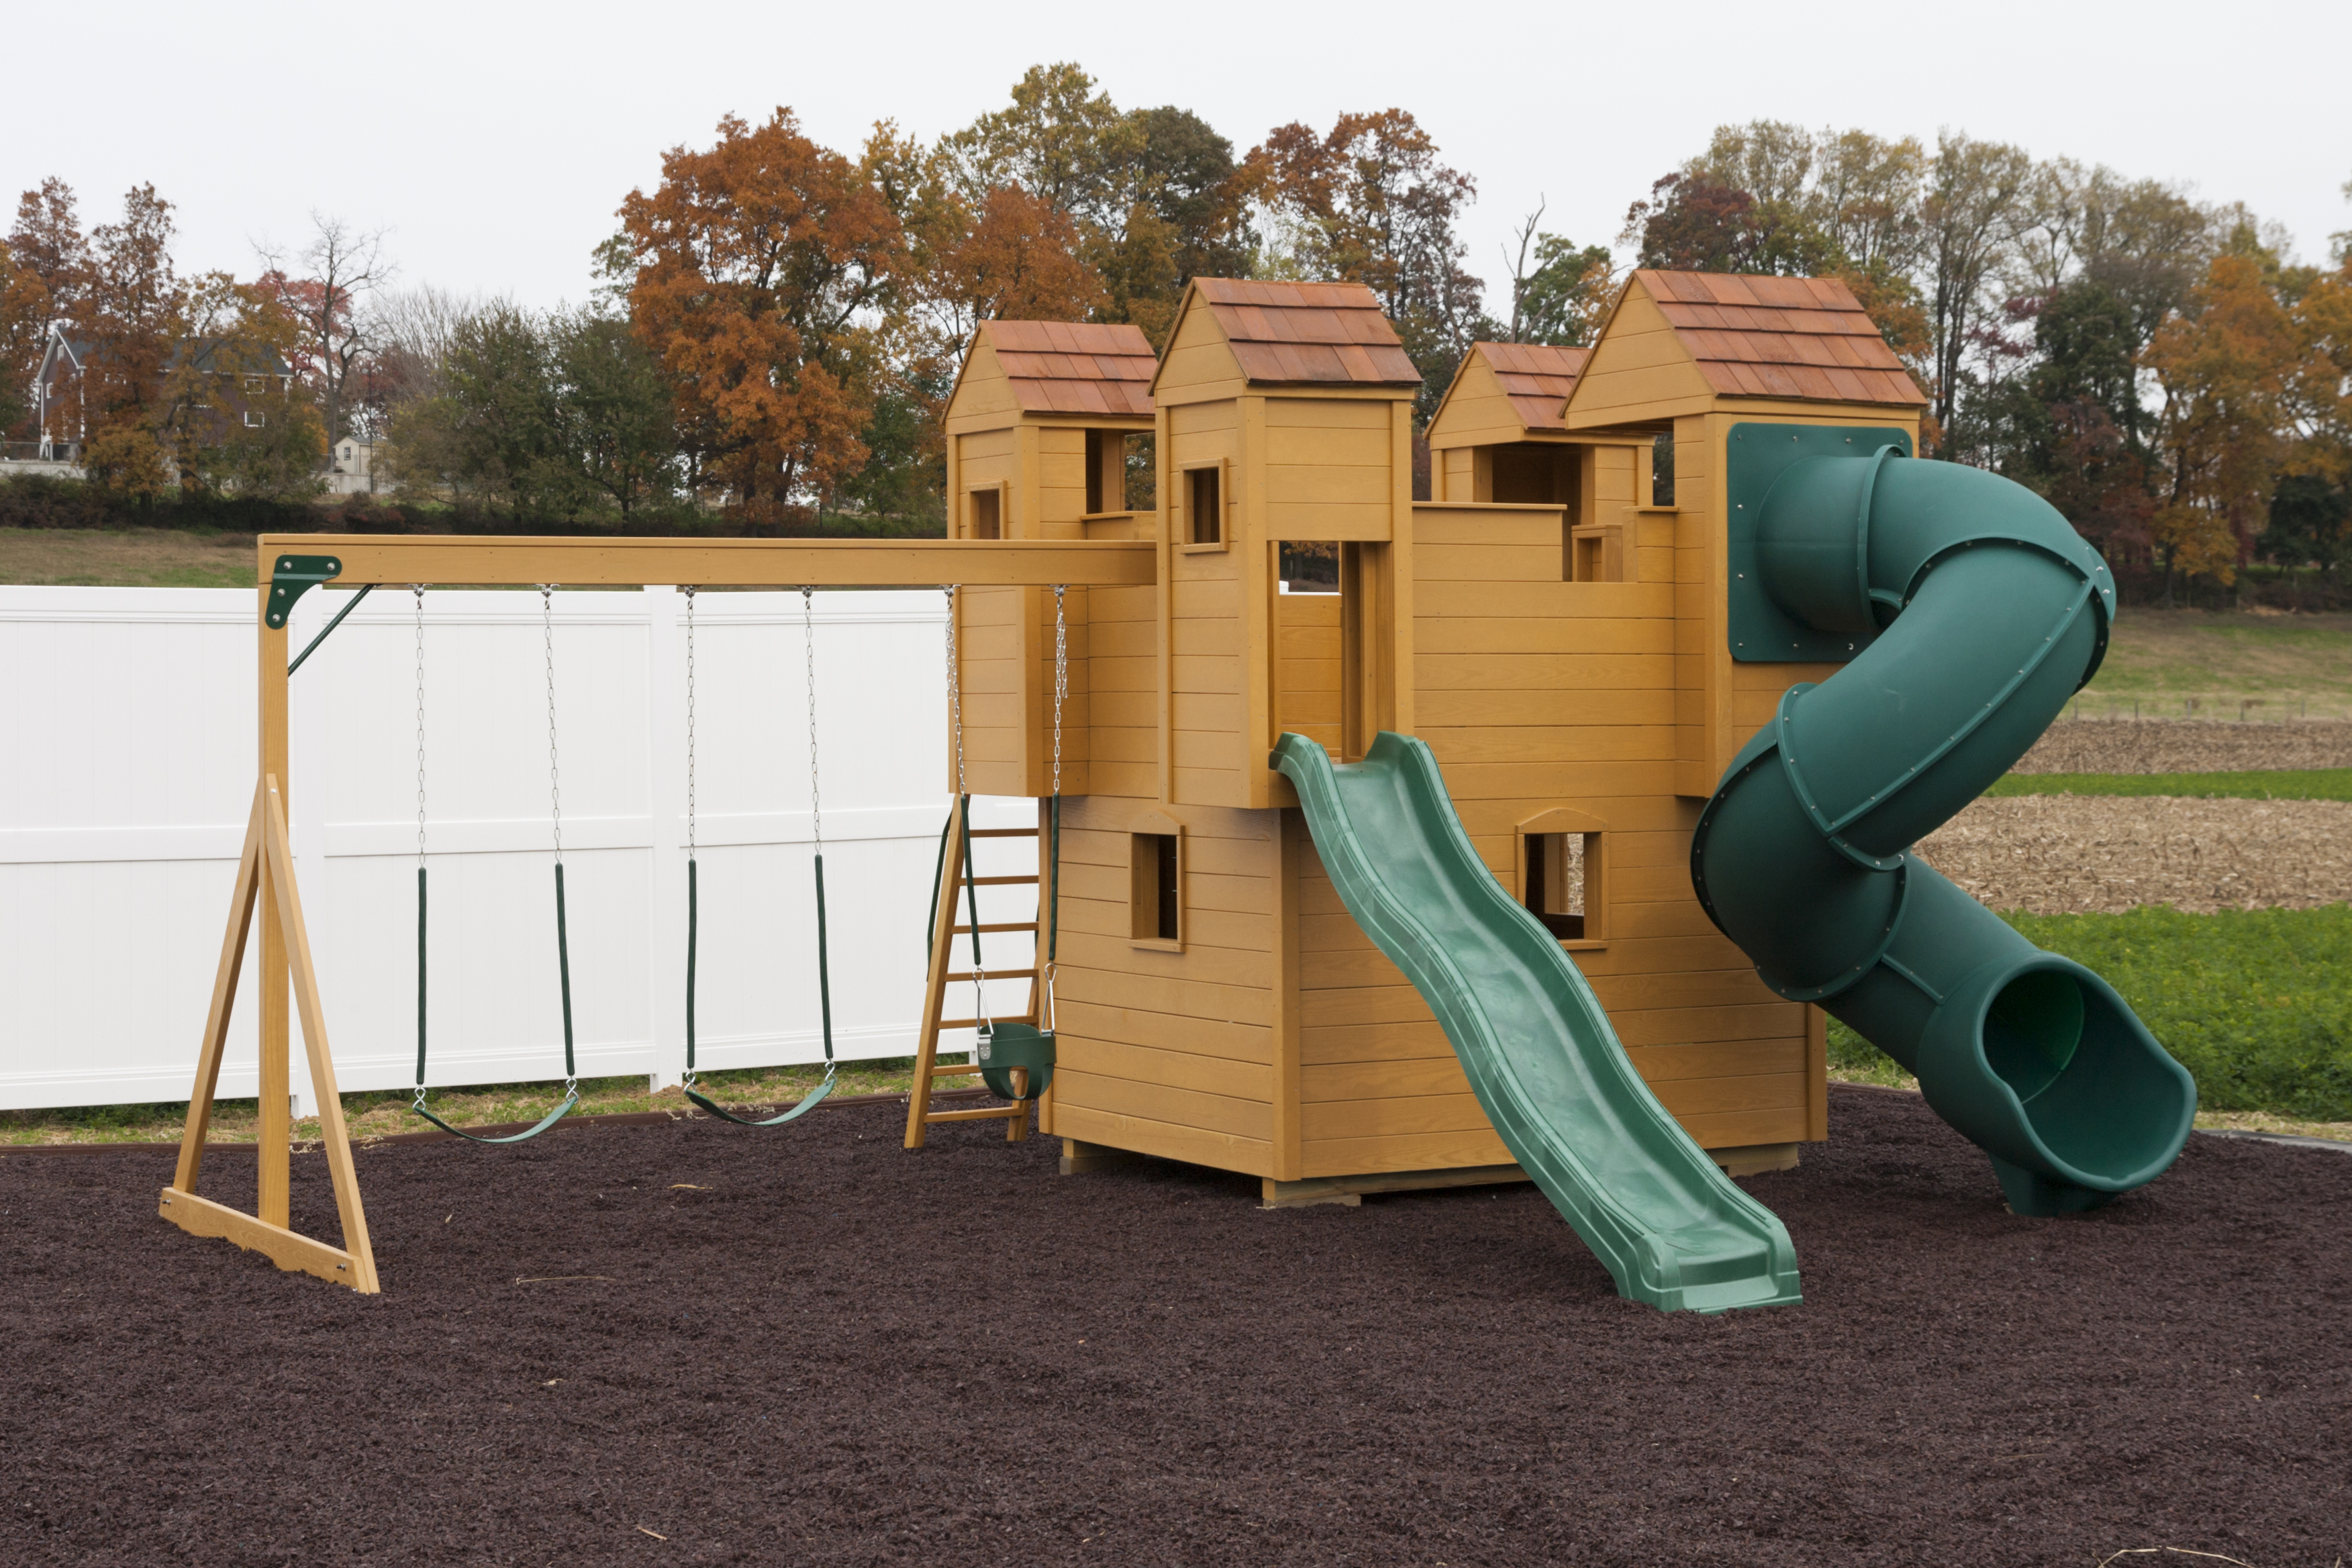 Amish Playhouses & Wood Playgrounds for Sale in eonta NY